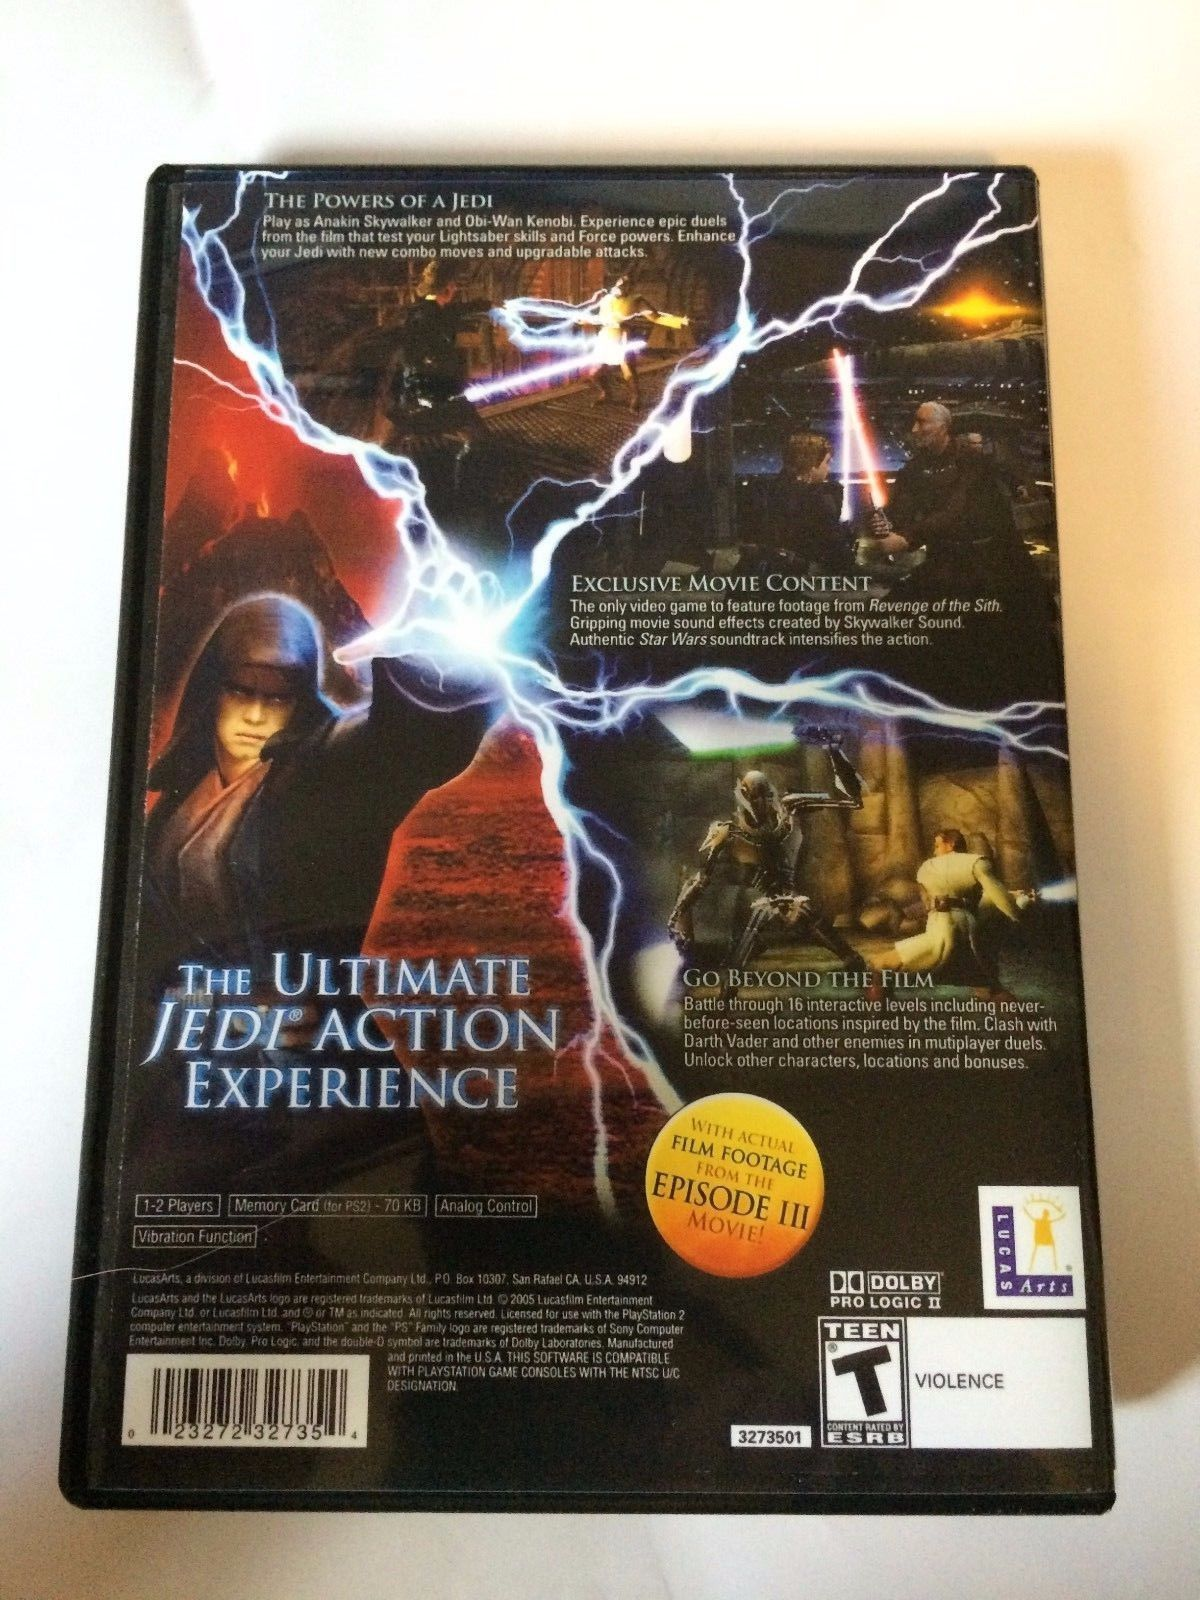 Star Wars Revenge of the Sith - Playstation 2 - Replacement Case - No Game